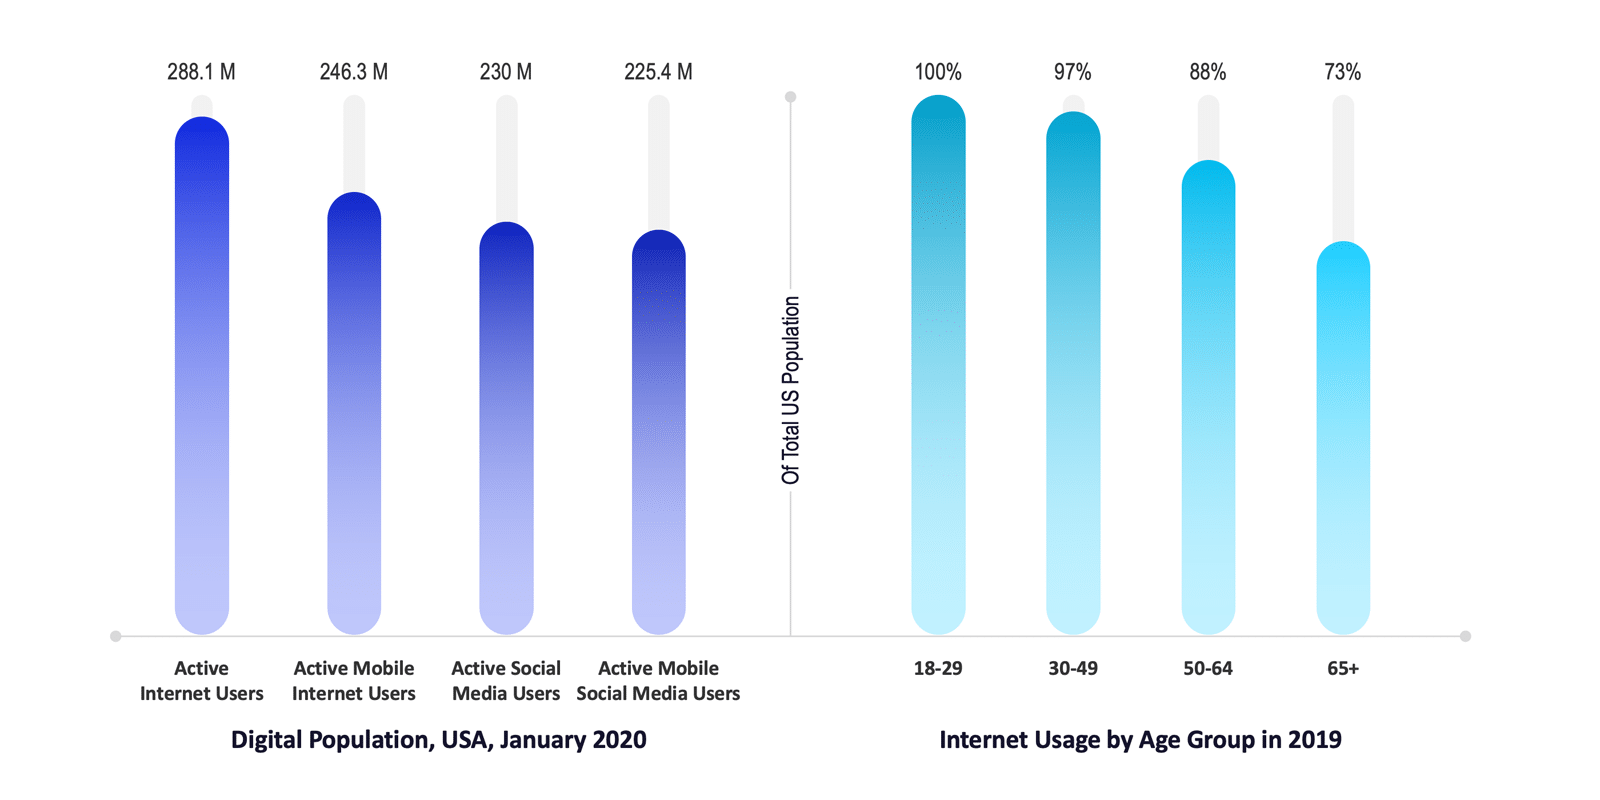 Digital Population and Internet Usage by Age Group in the USA